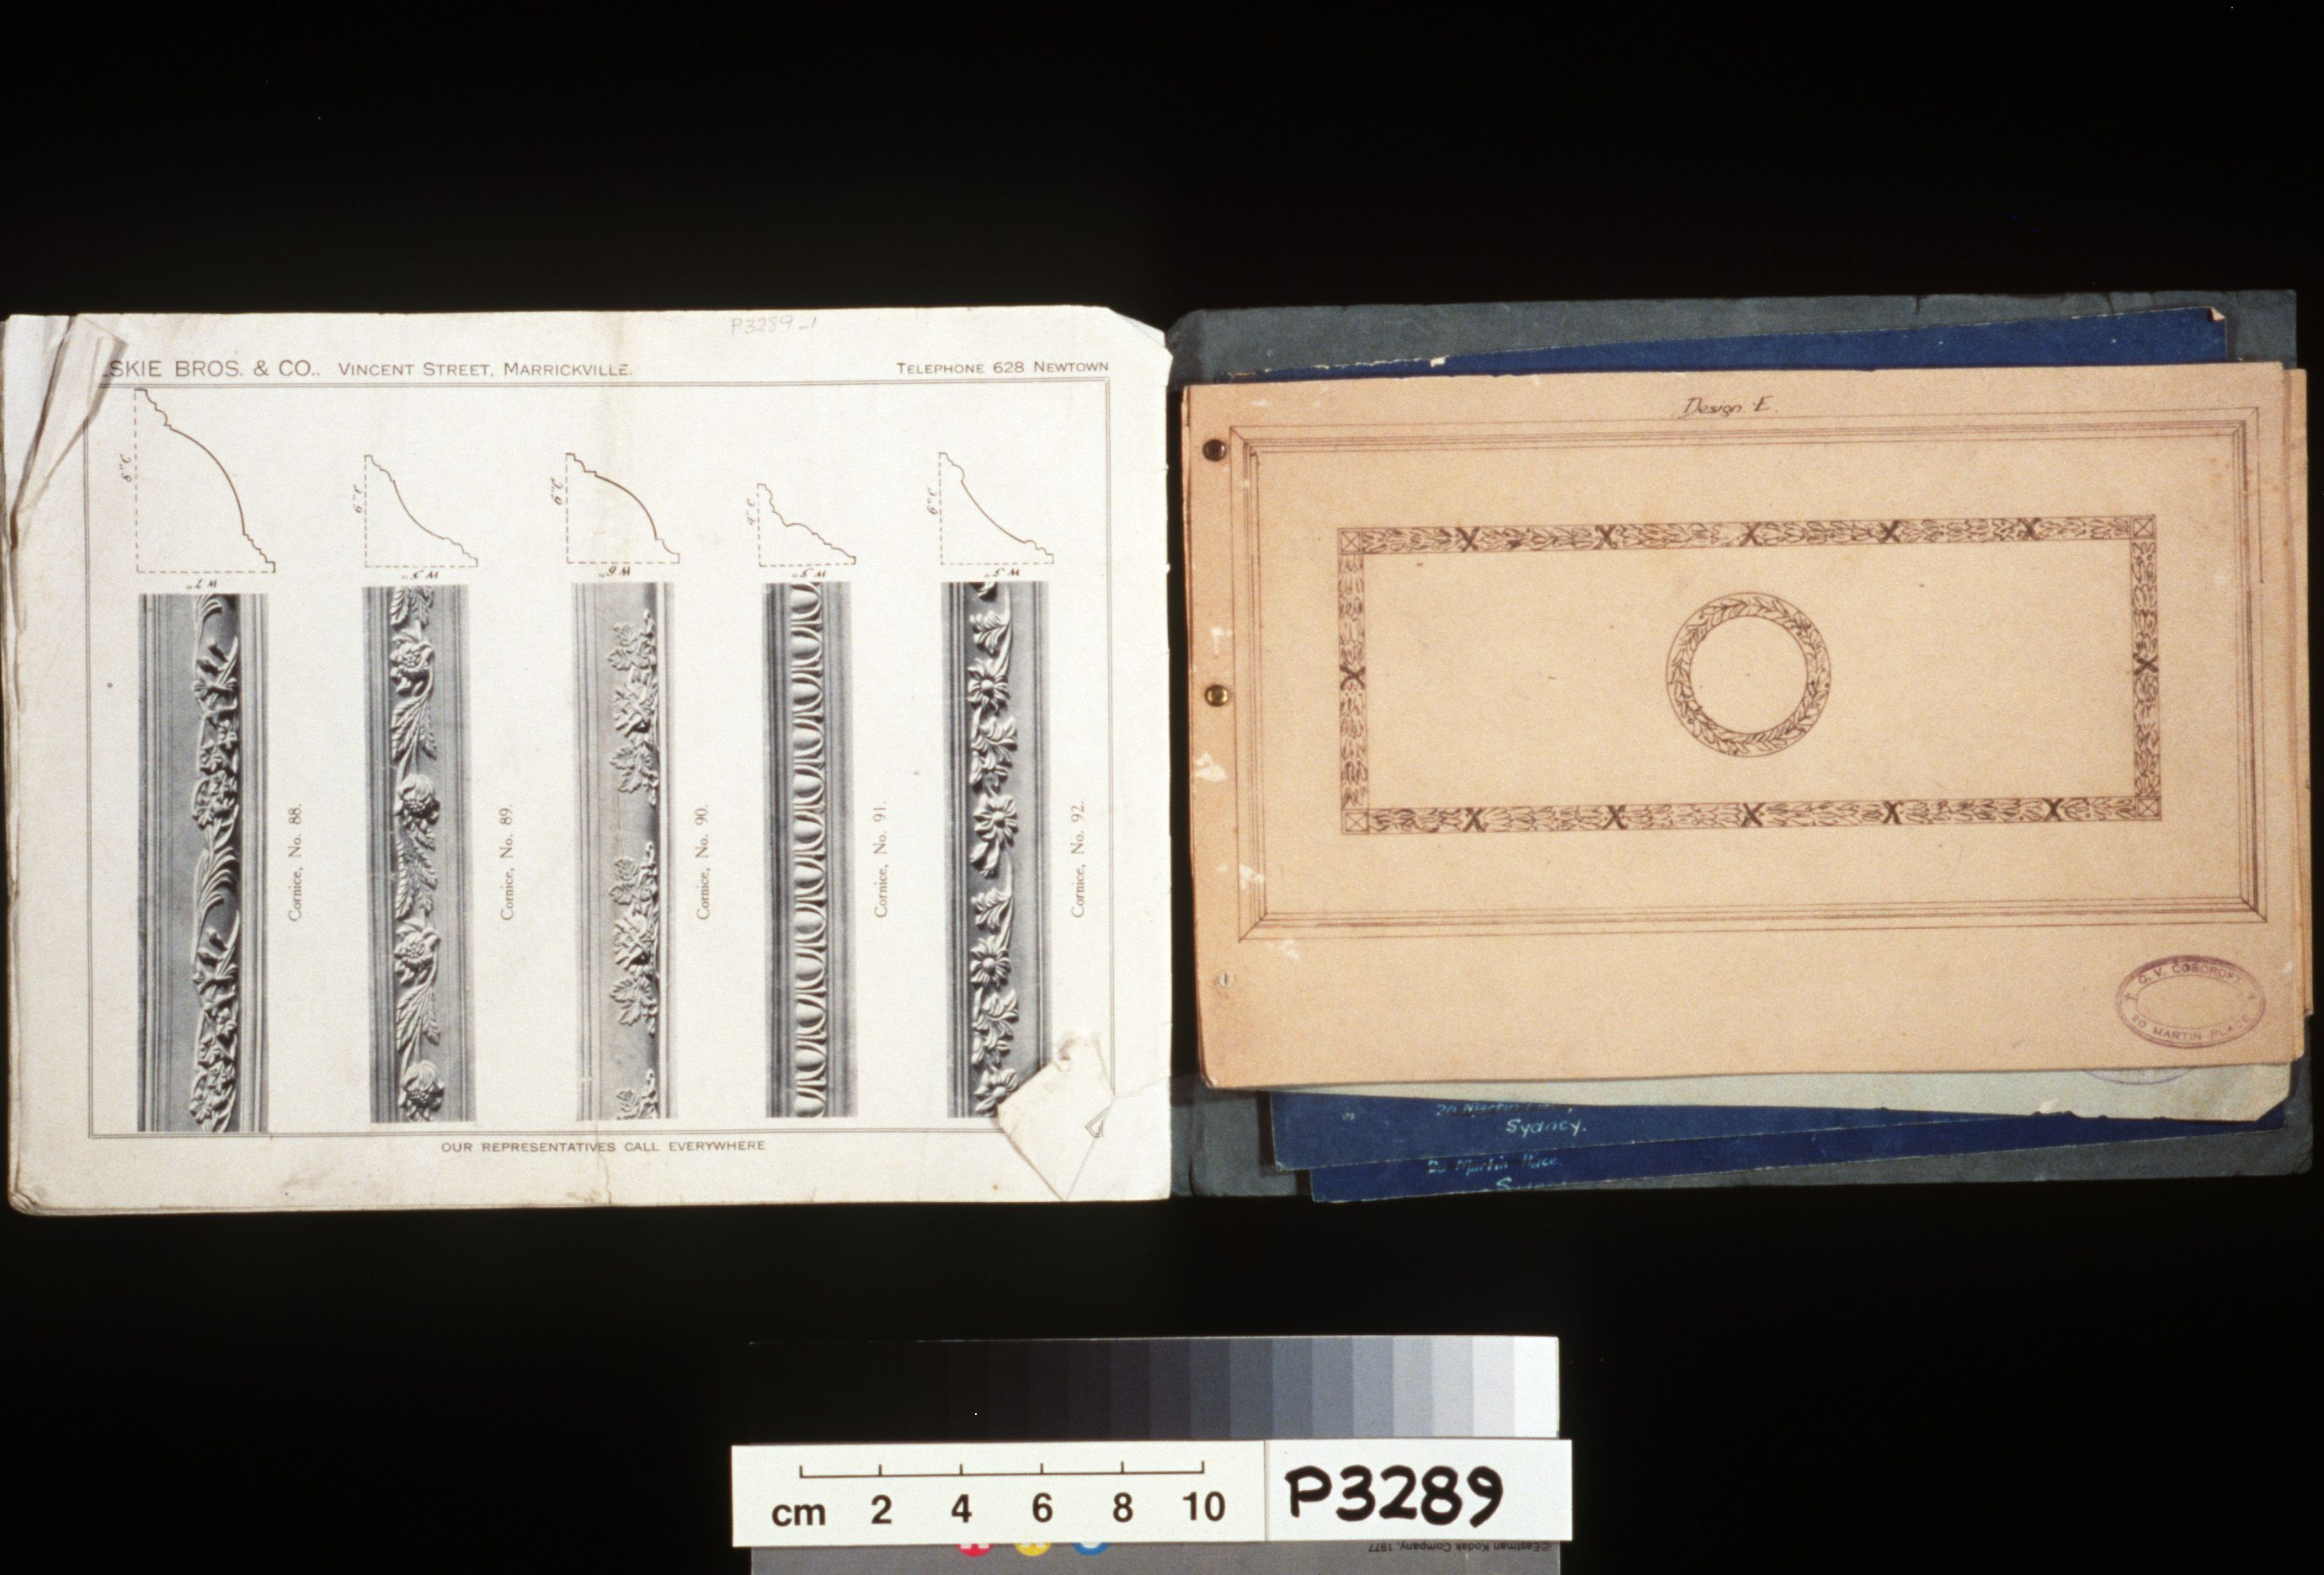 Catalogue, 'Fibrous Ceilings and Cornices', paper, architectural